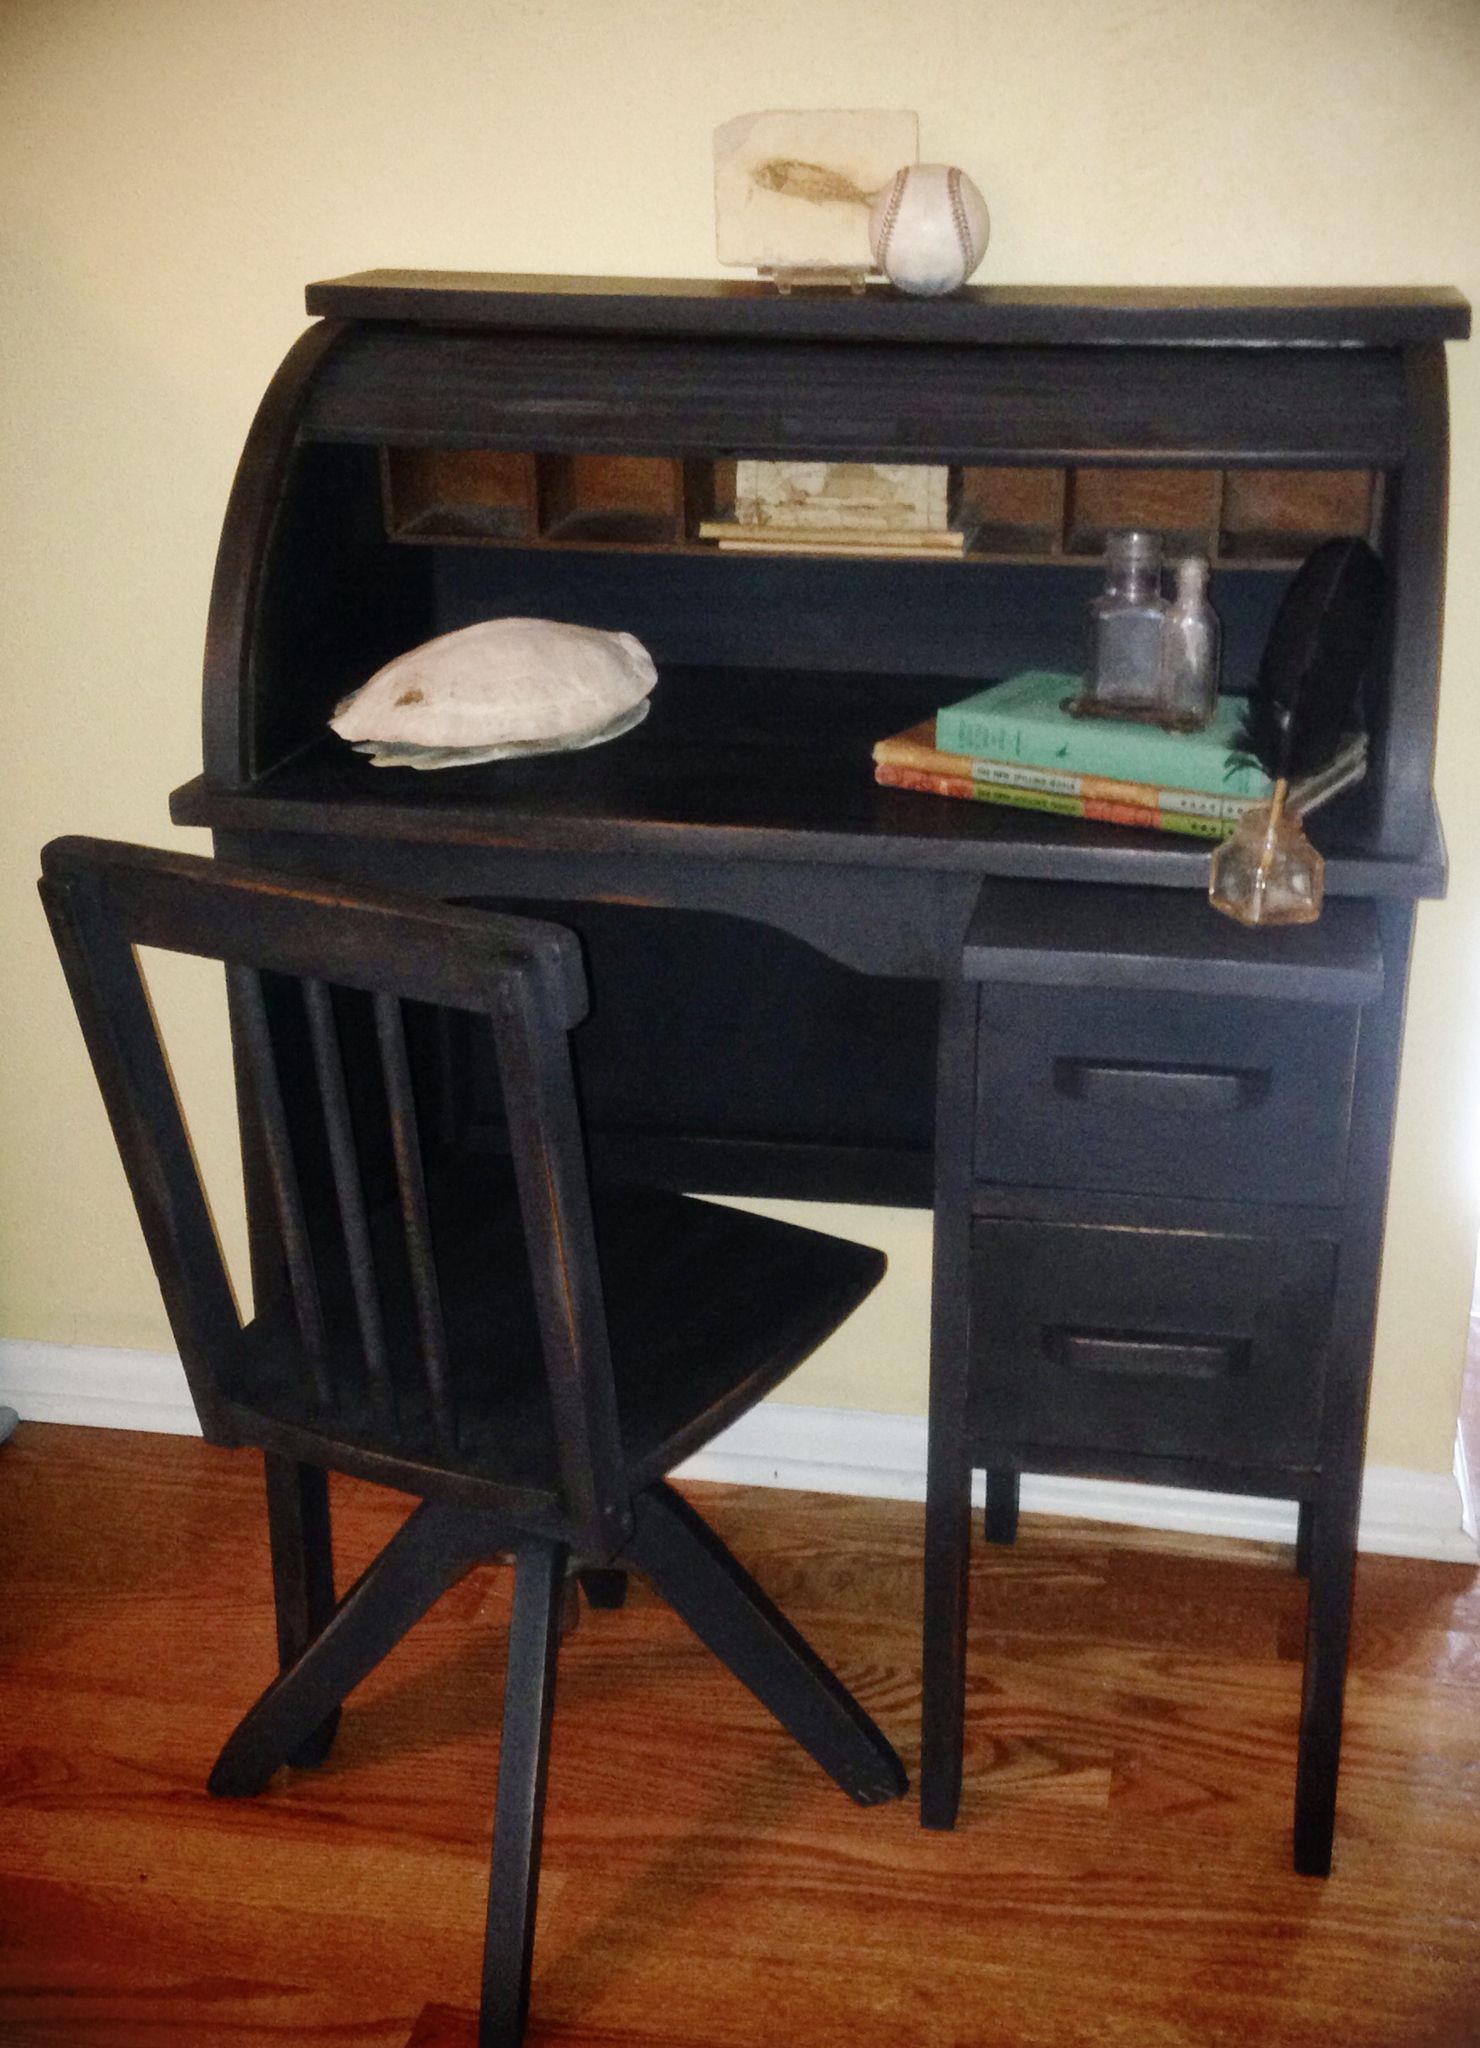 Superb Childs Roll Top Desk And Chair Painted In Annie Sloan Dailytribune Chair Design For Home Dailytribuneorg